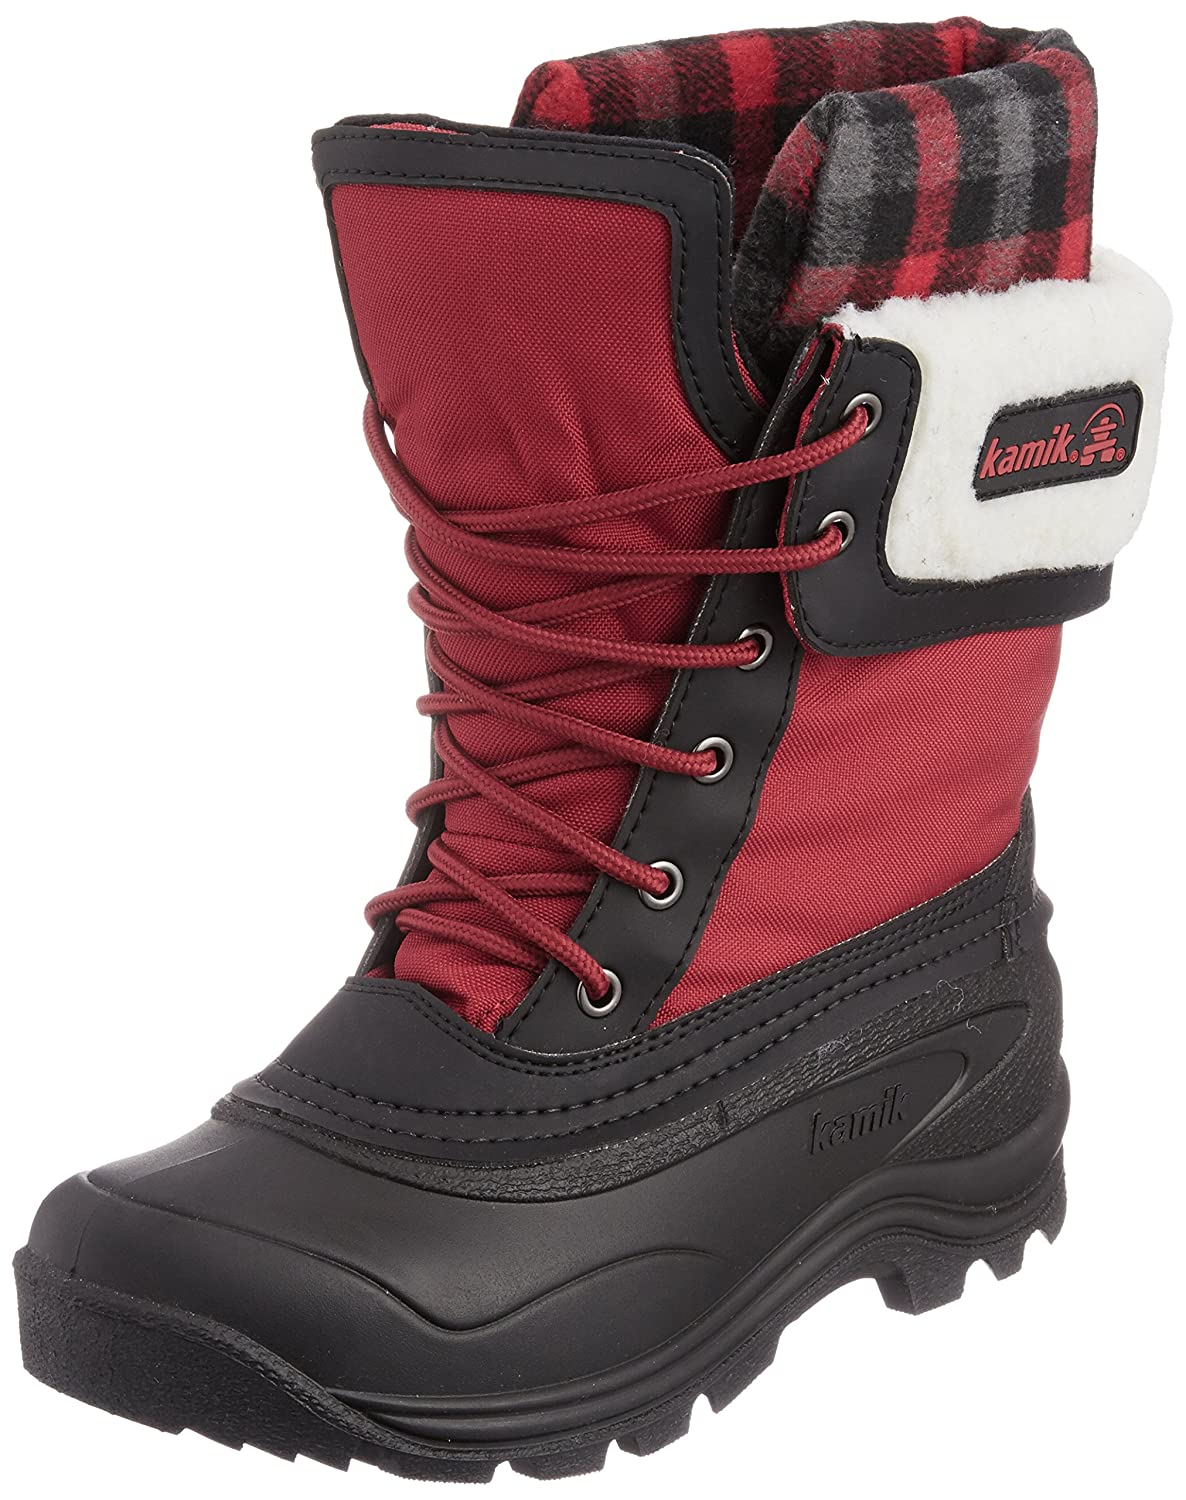 Kamik Women's Sugarloaf Boot B00HSYE5V6 11 B(M) US|Red